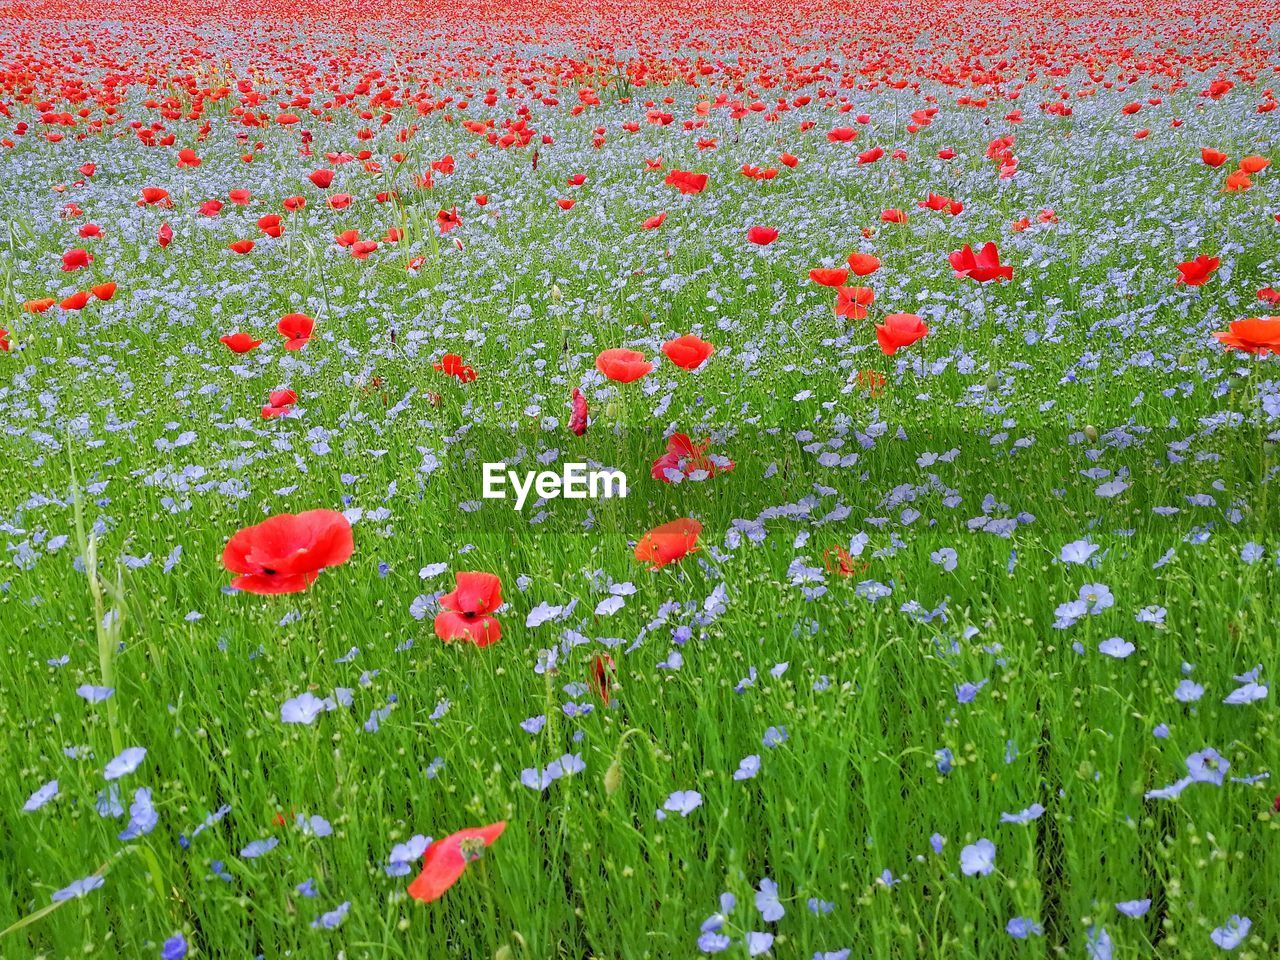 flower, flowering plant, plant, freshness, red, beauty in nature, growth, fragility, vulnerability, poppy, petal, field, land, nature, green color, no people, inflorescence, flower head, day, grass, outdoors, flowerbed